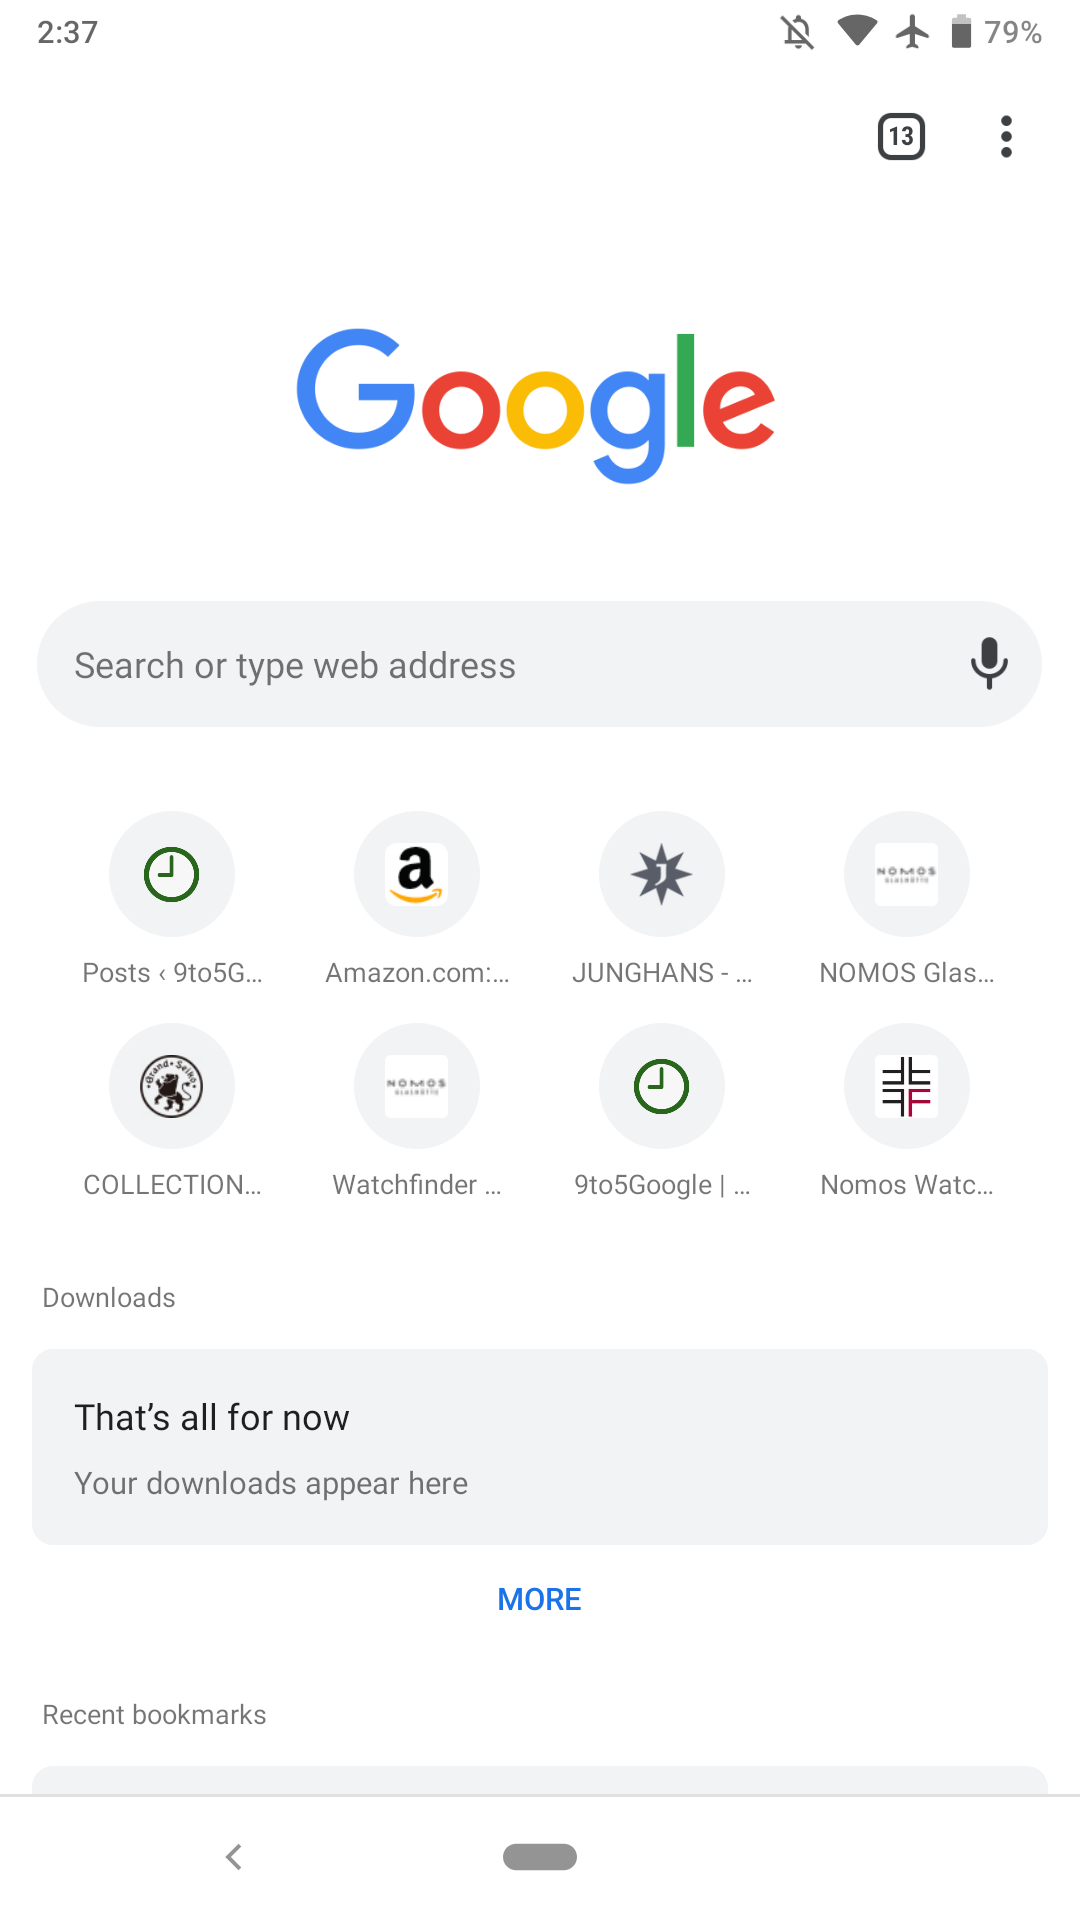 Chrome 69 for Android rolling out w/ Google Material Theme